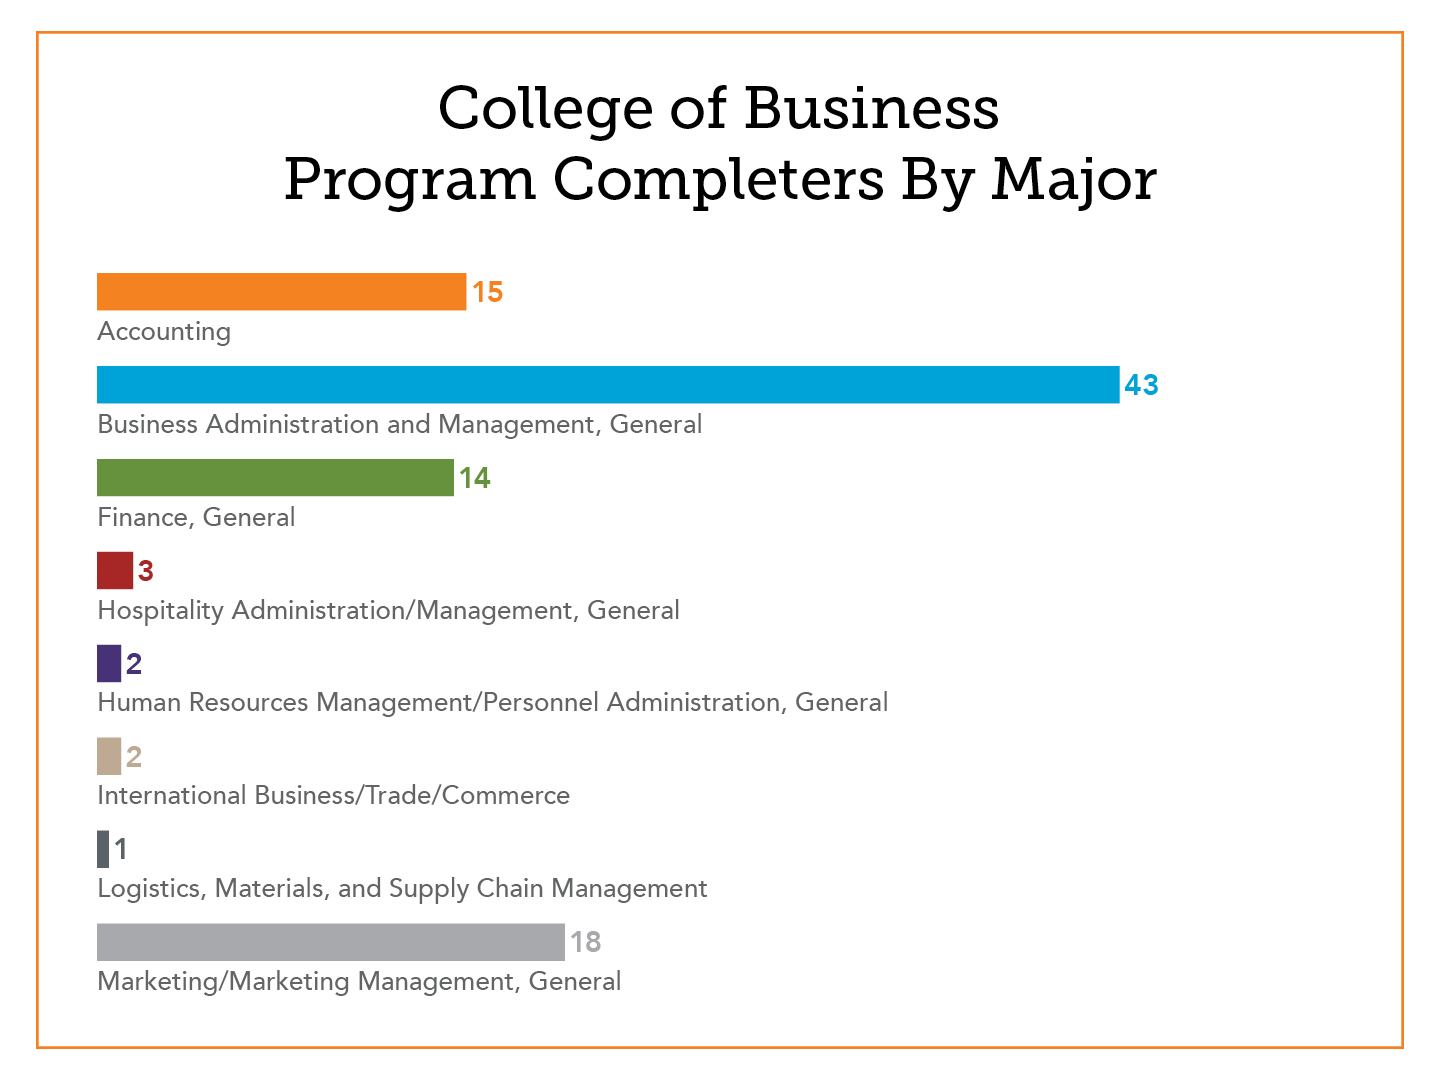 COB Program Completer Graphs2.jpg